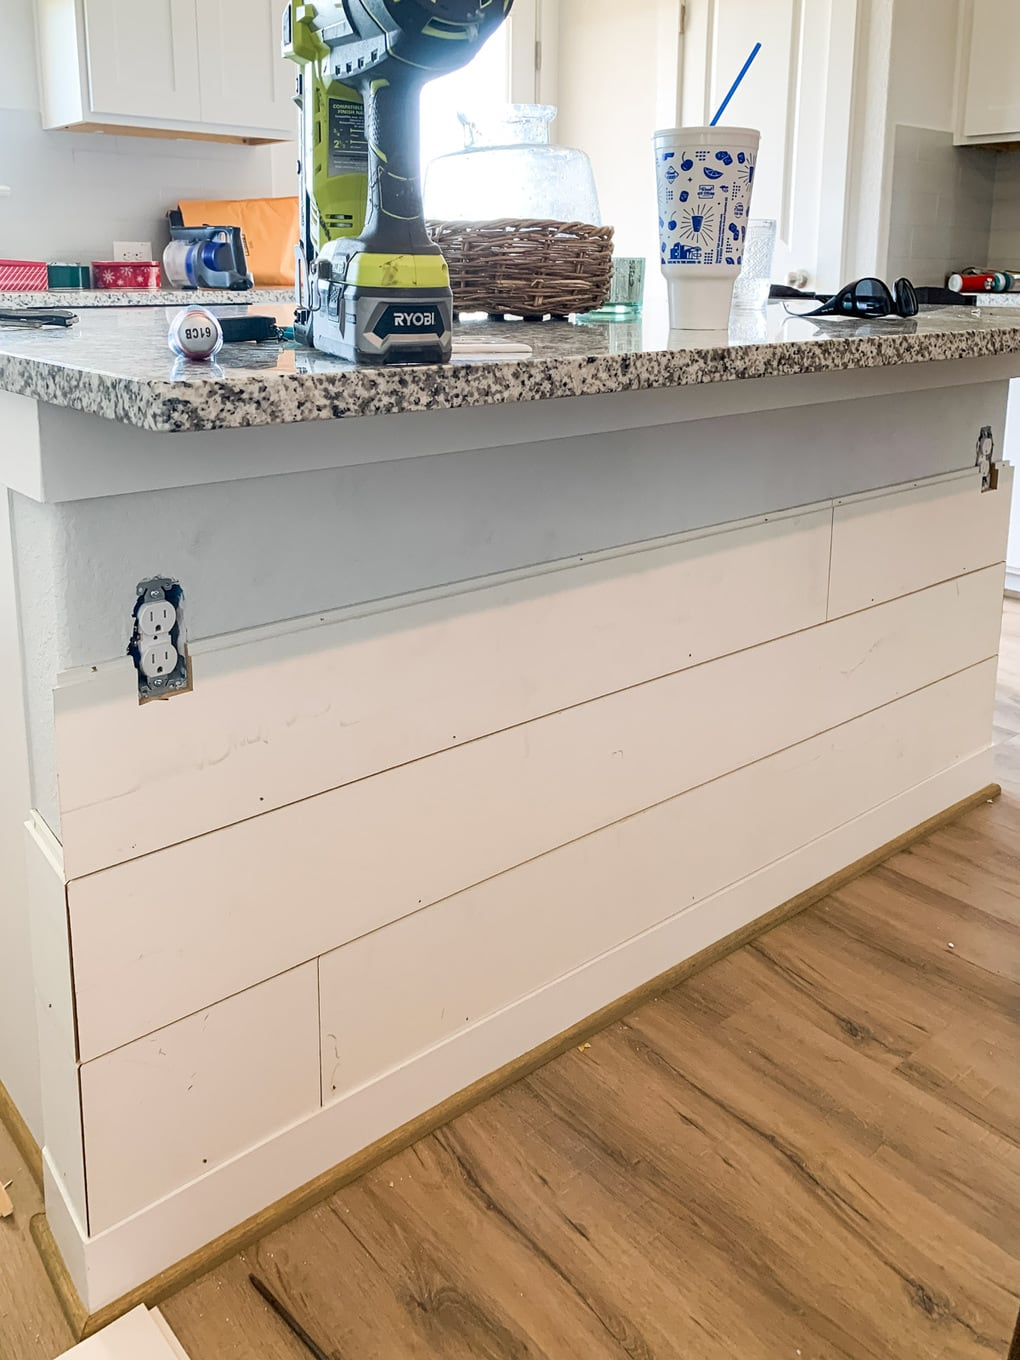 partially-installed shiplap on kitchen island